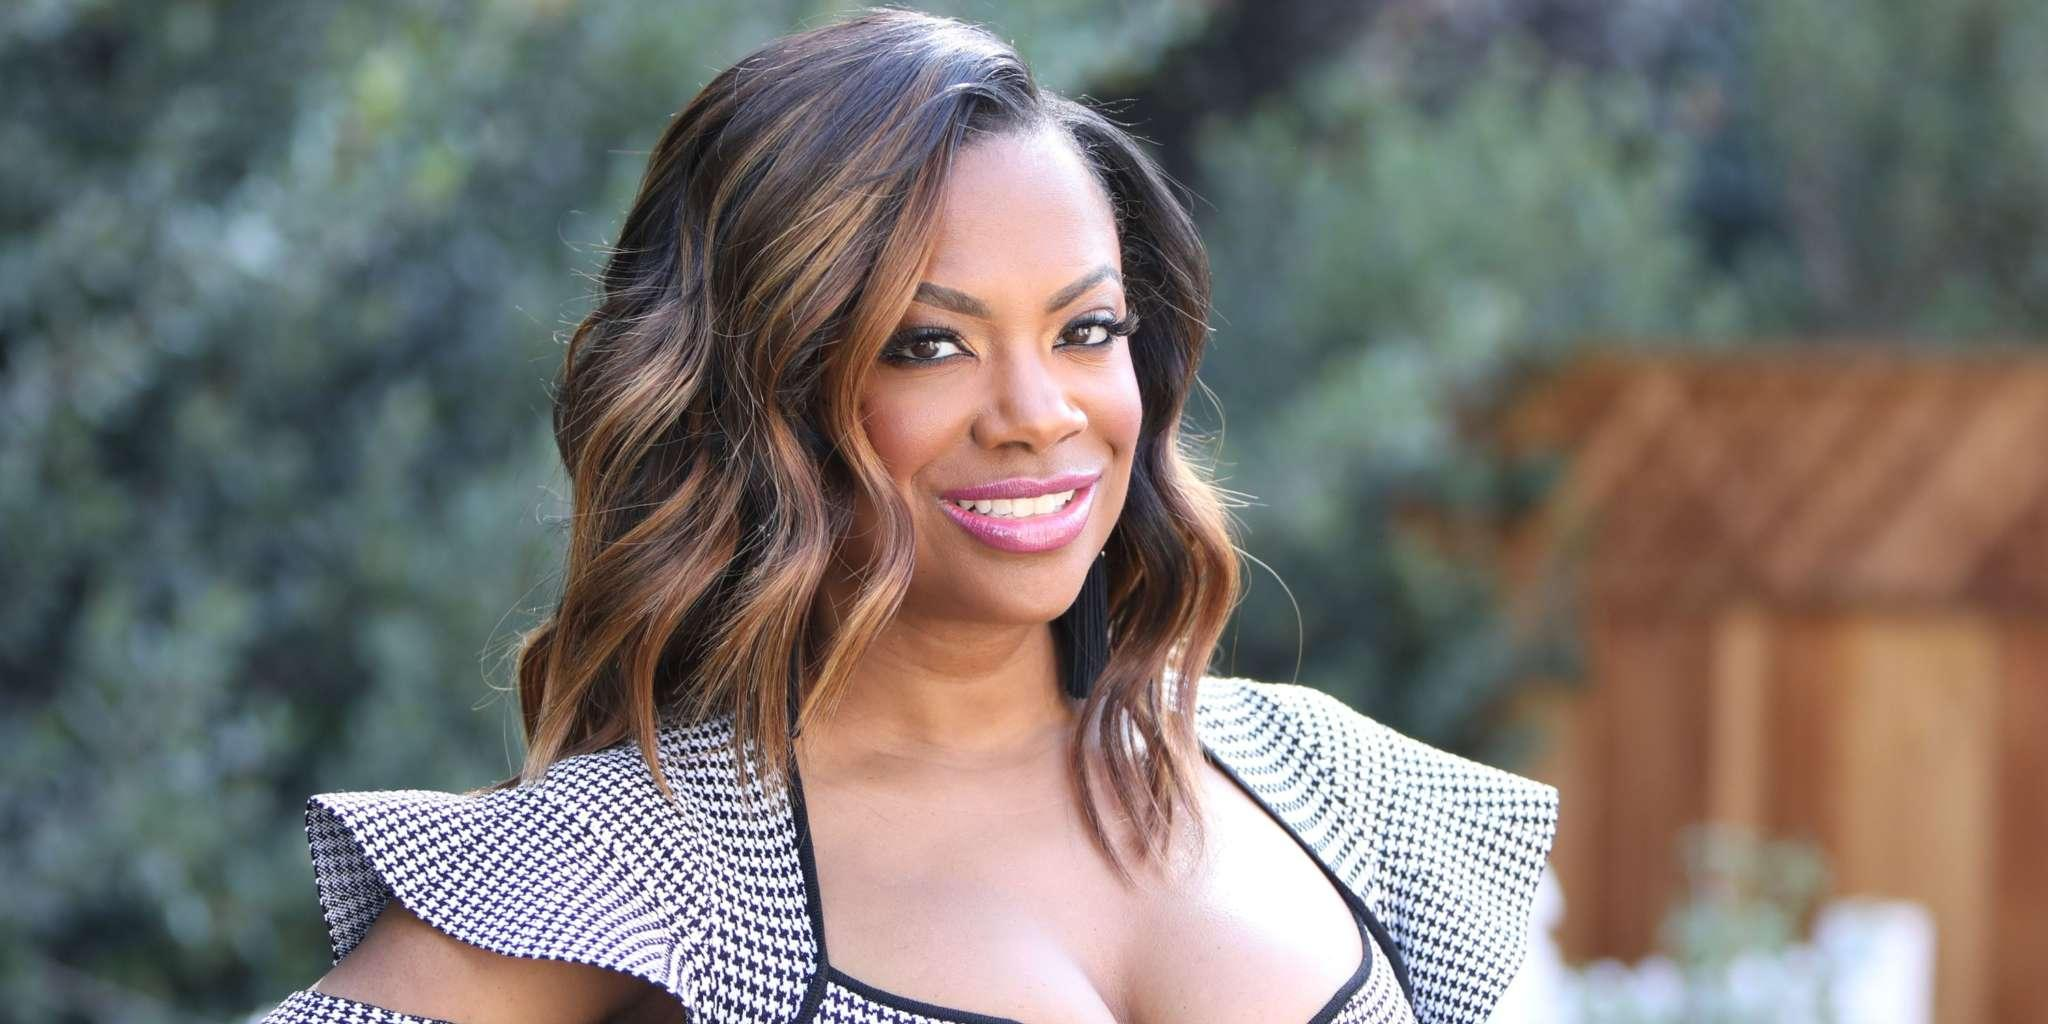 Kandi Burruss Looked Amazing At The WWHL And Tiny Harris Appreciated Her Look